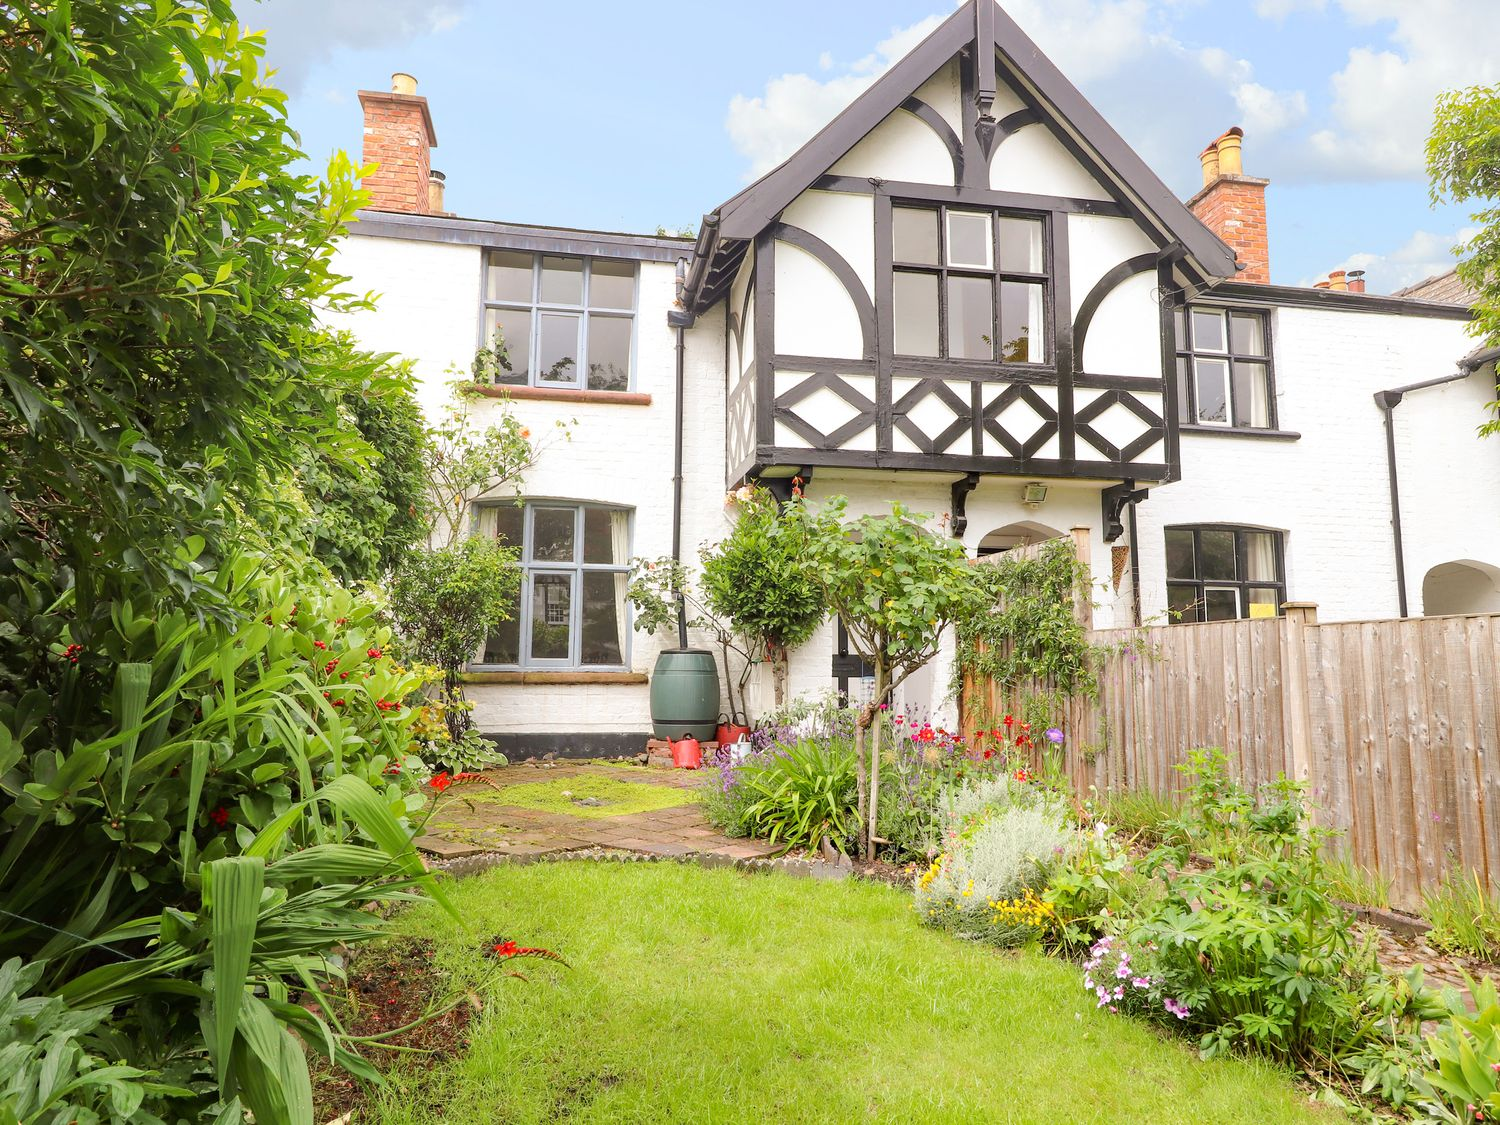 2 Ashby Place - North Wales - 1017632 - photo 1